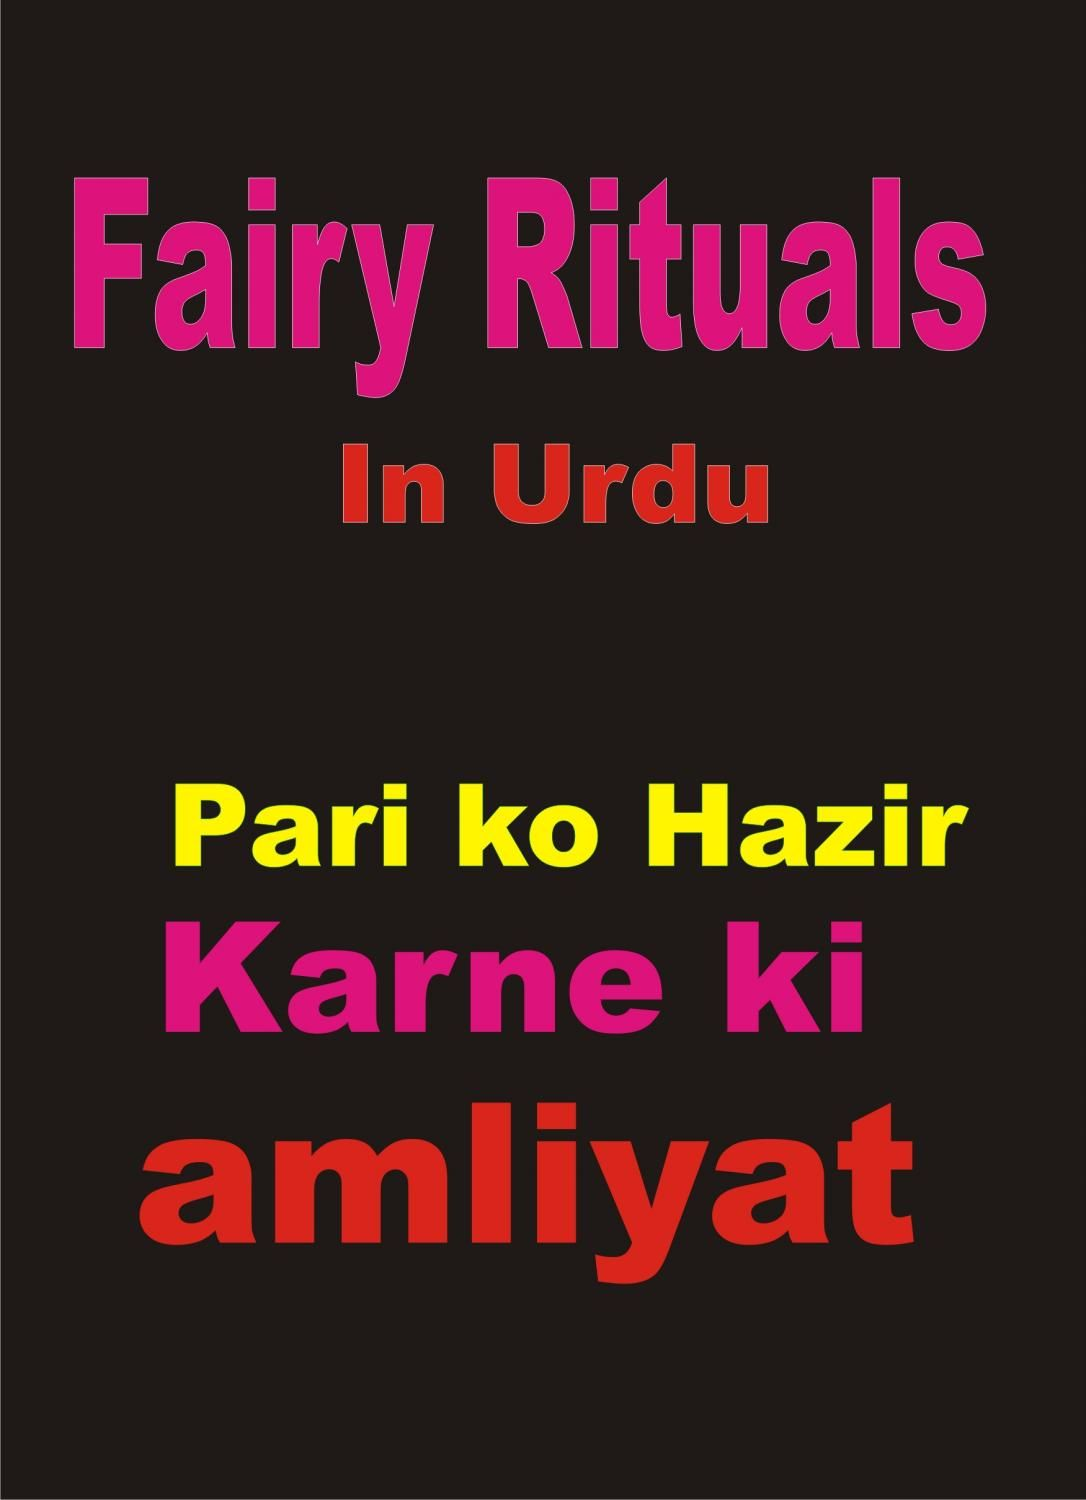 Pari amliyat in urdu fairy ritual in urdu ebook pdf free